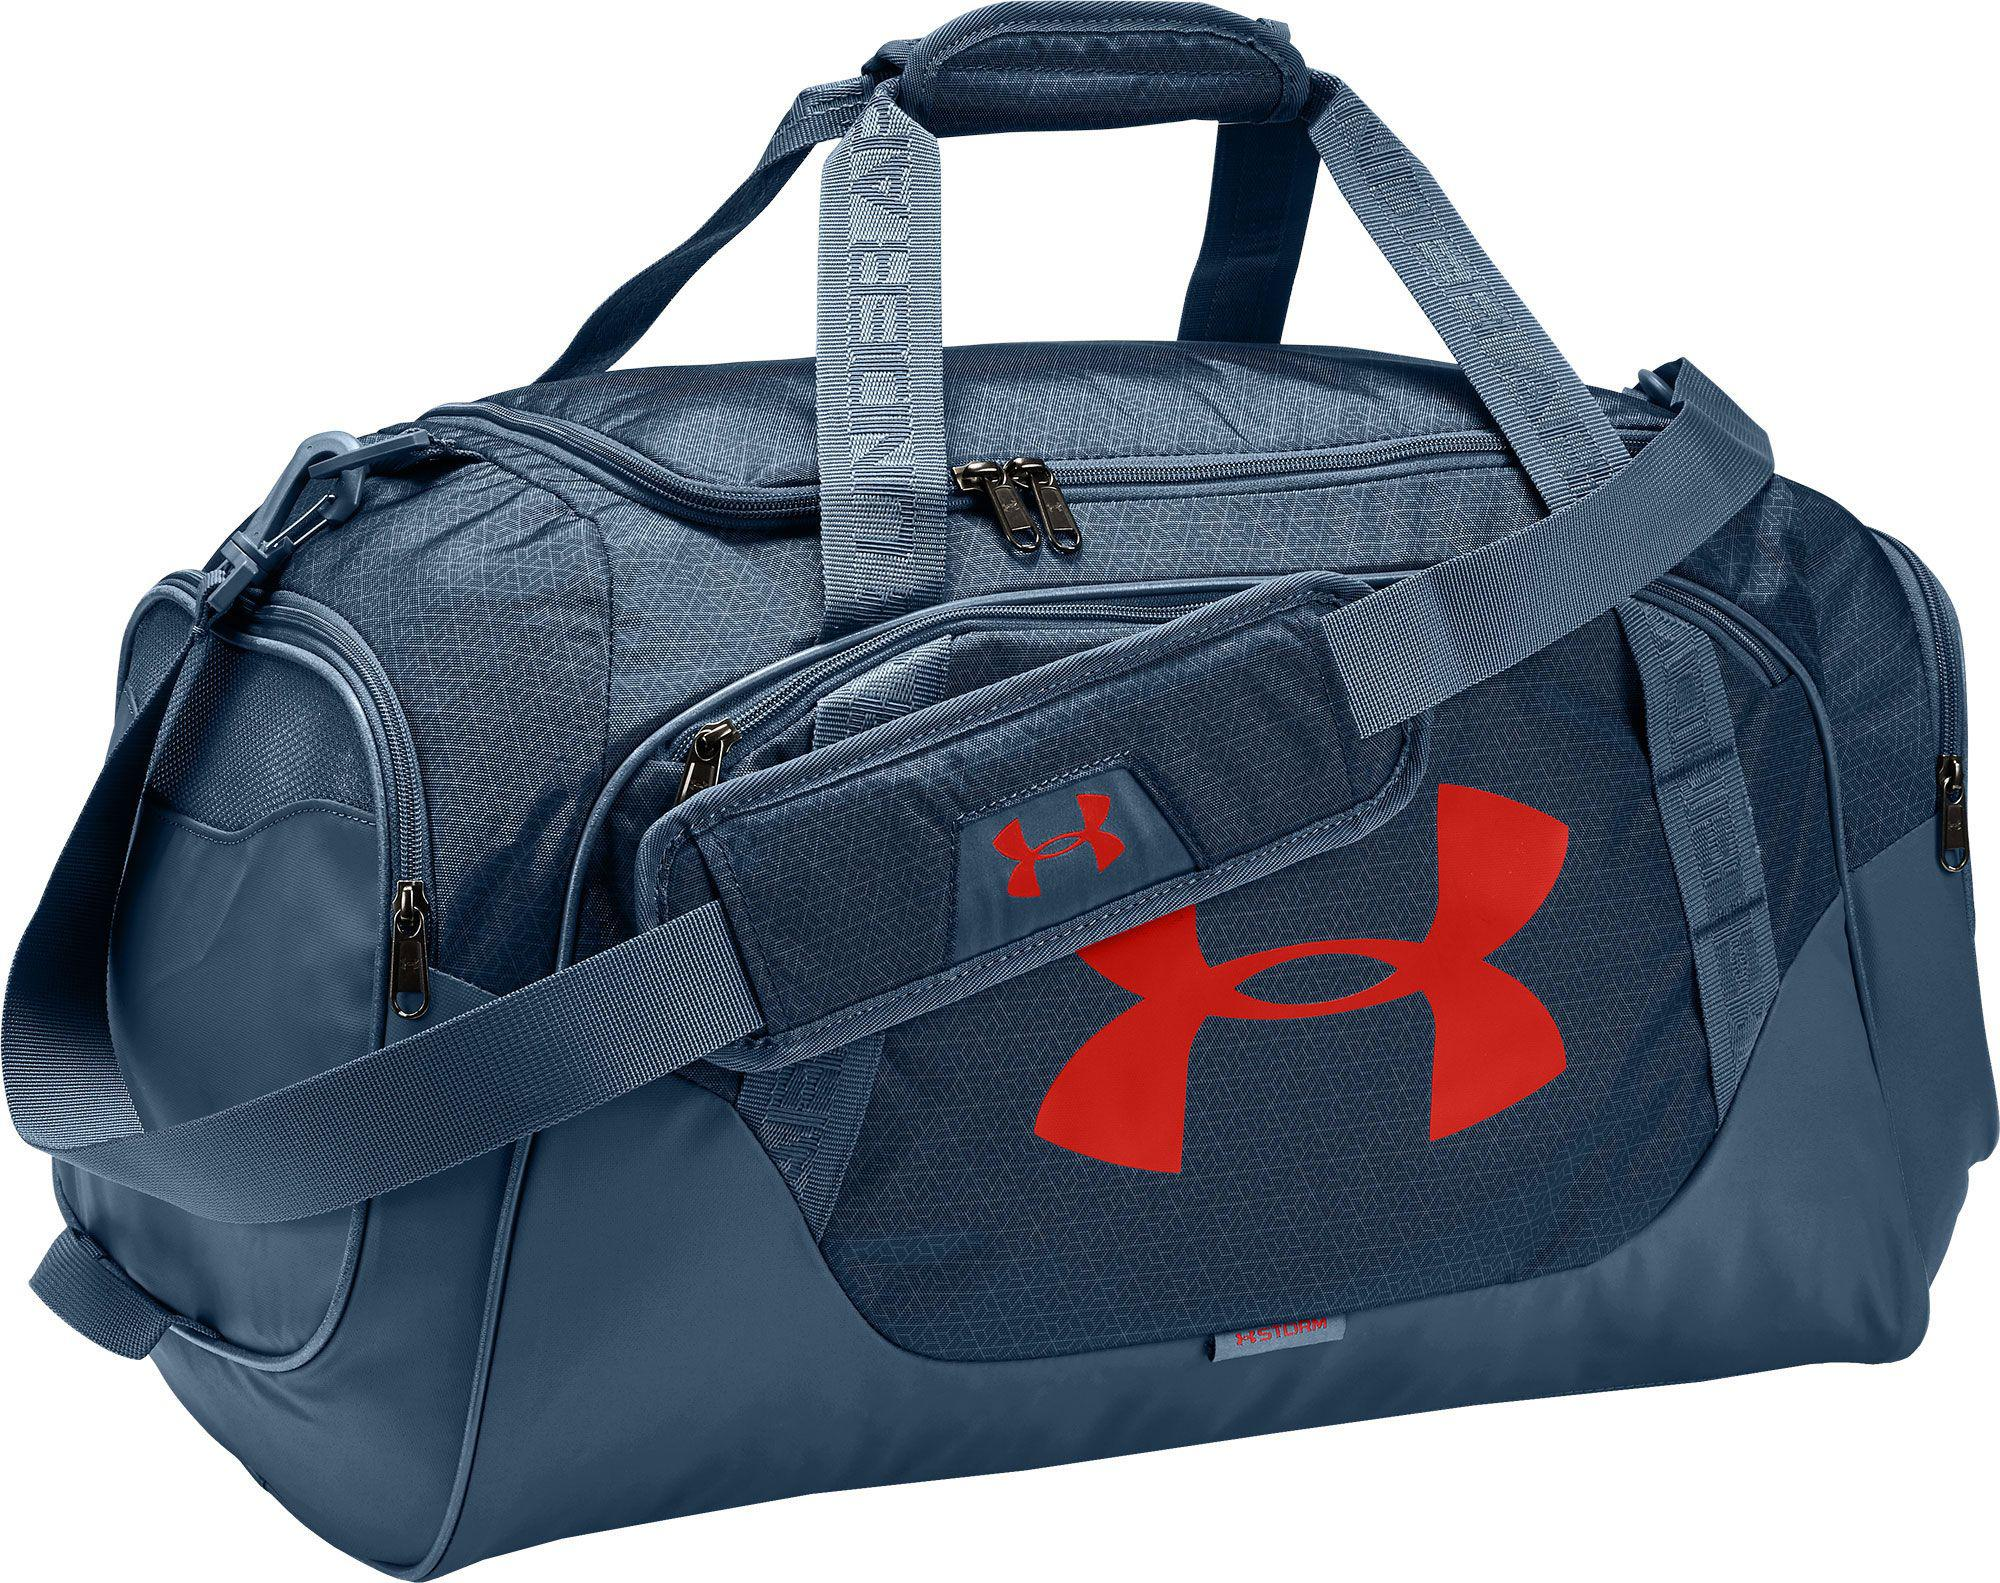 7a82998b46 Lyst - Under Armour Undeniable 3.0 Medium Duffle Bag in Blue for Men